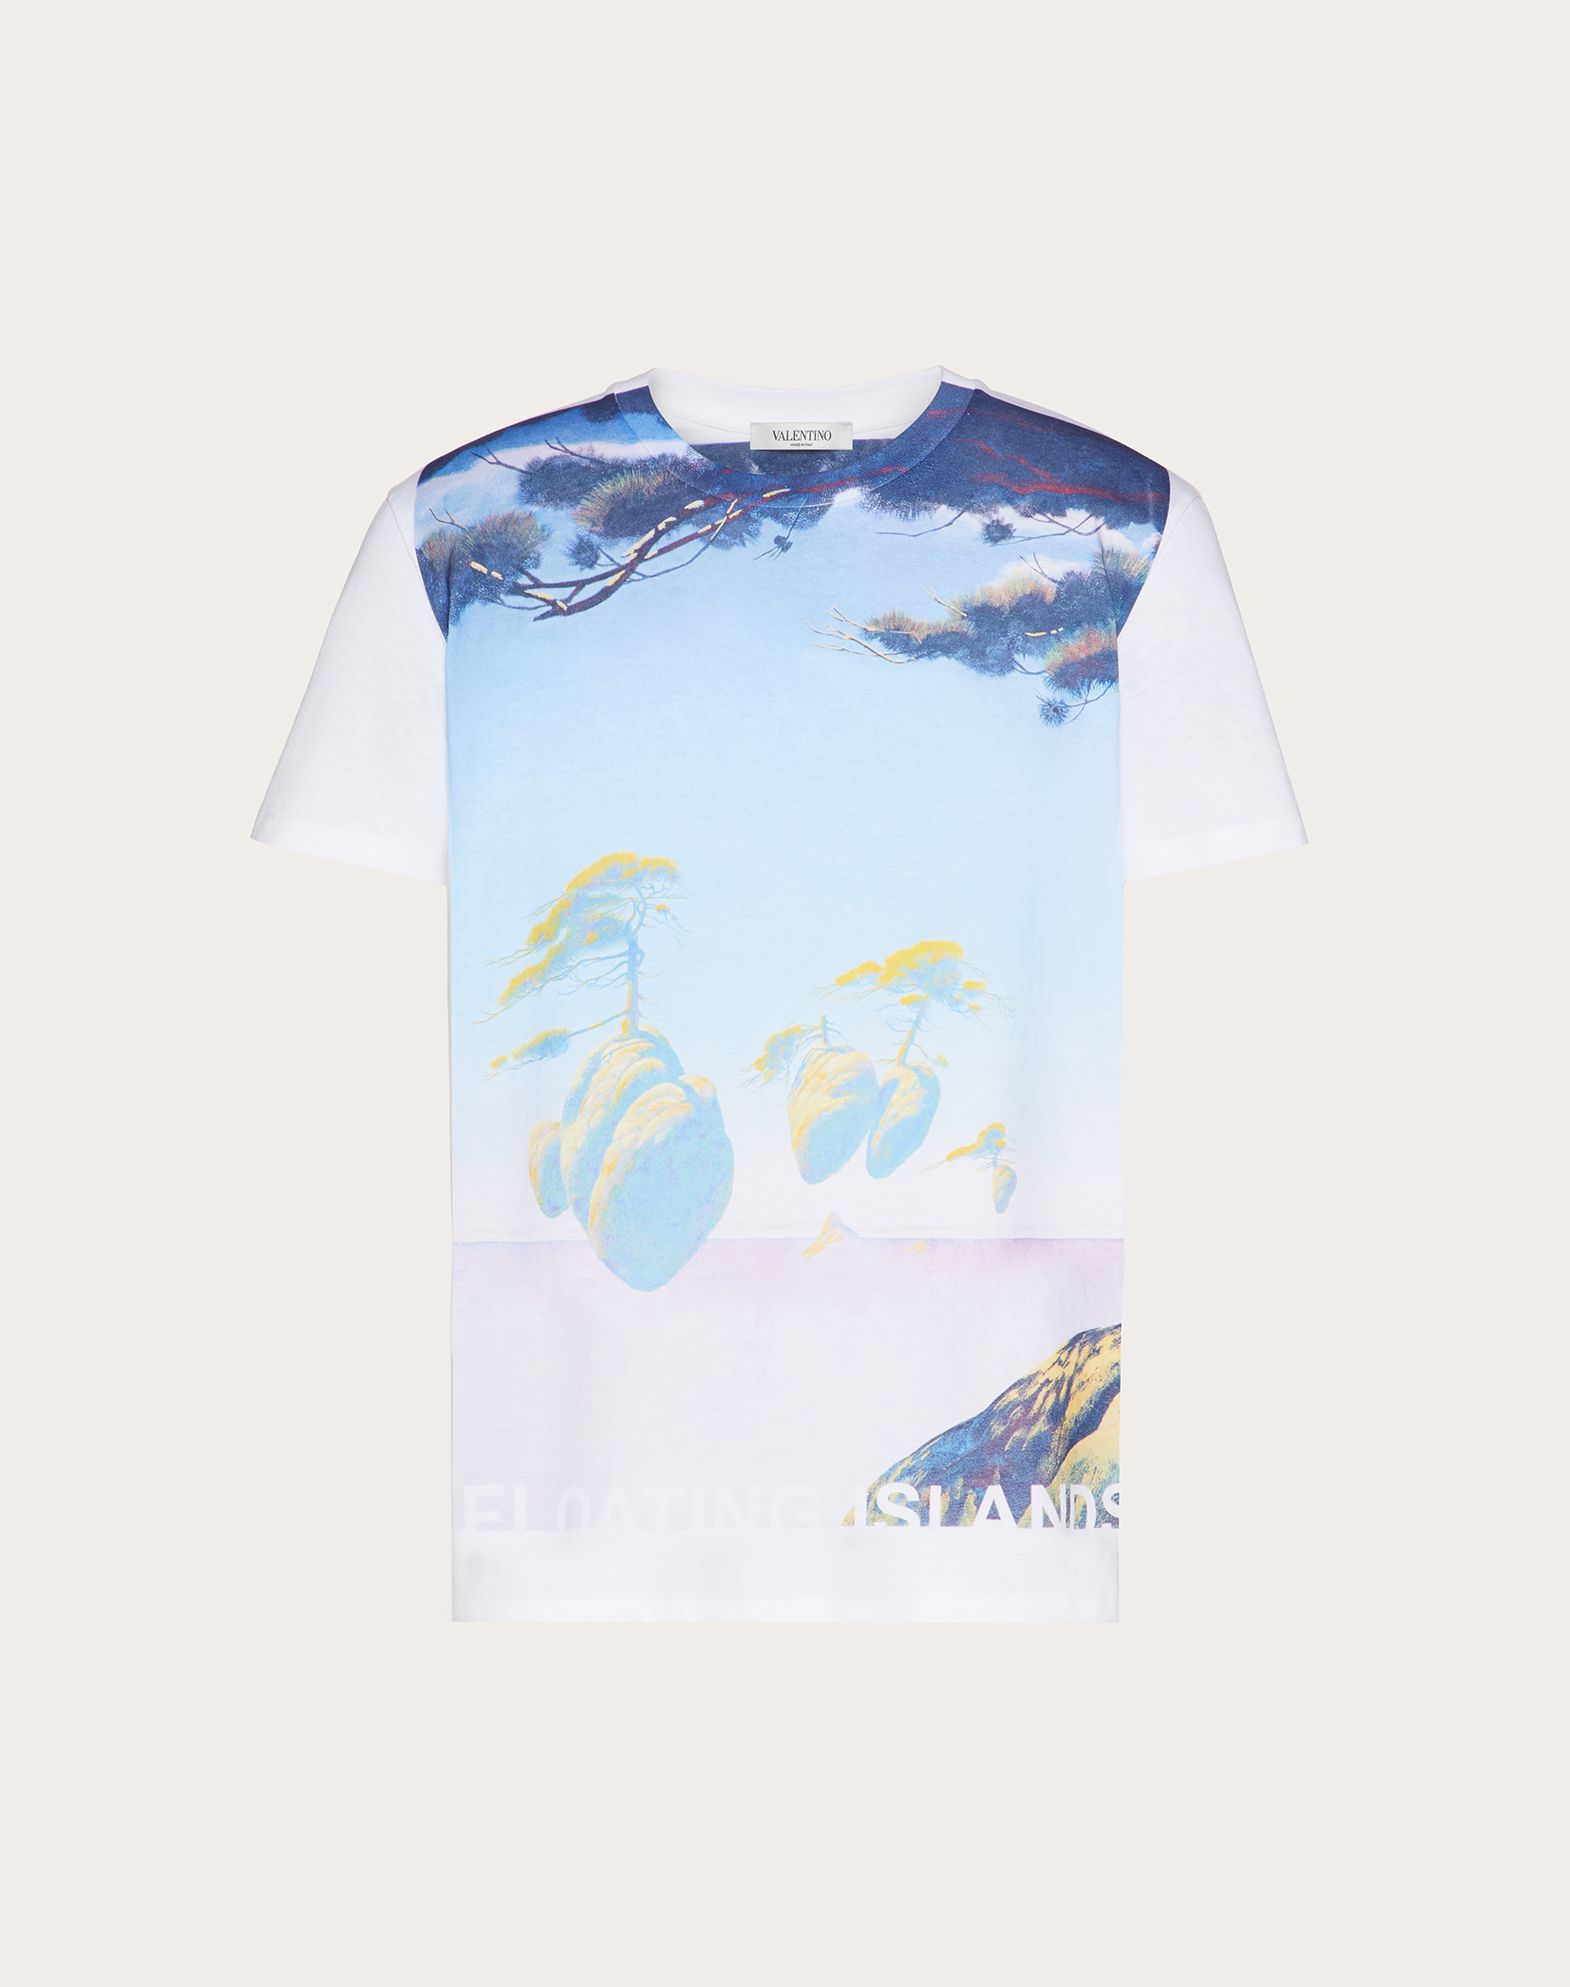 T-SHIRT STAMPA ROGER DEAN